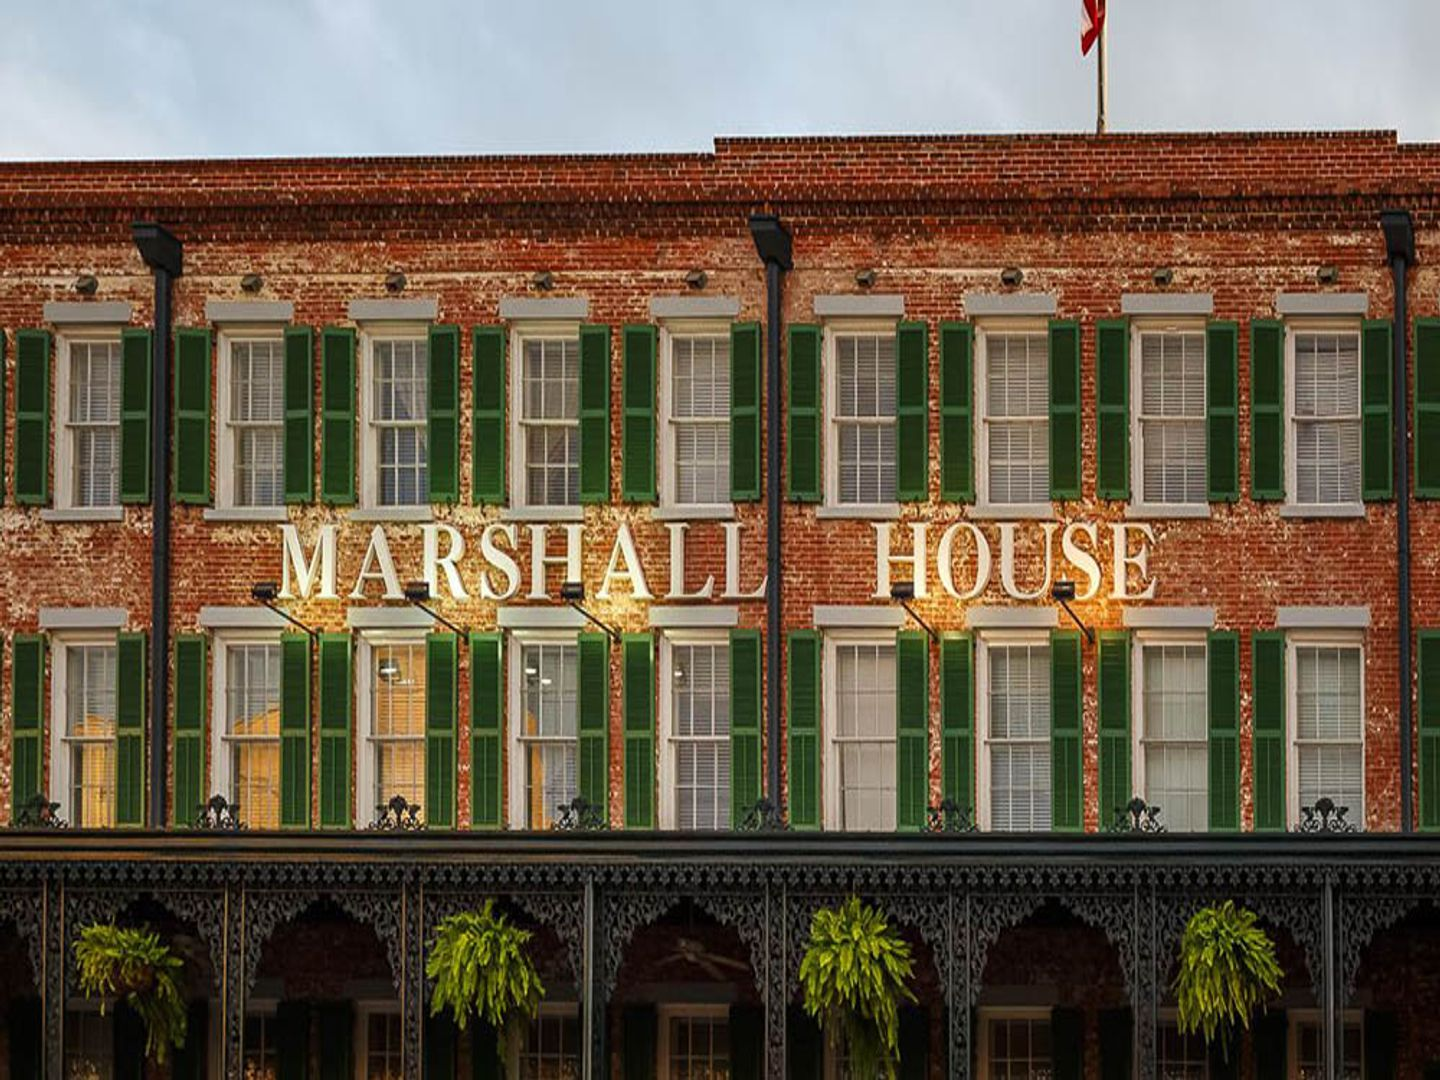 A sign in front of a building at The Marshall House.